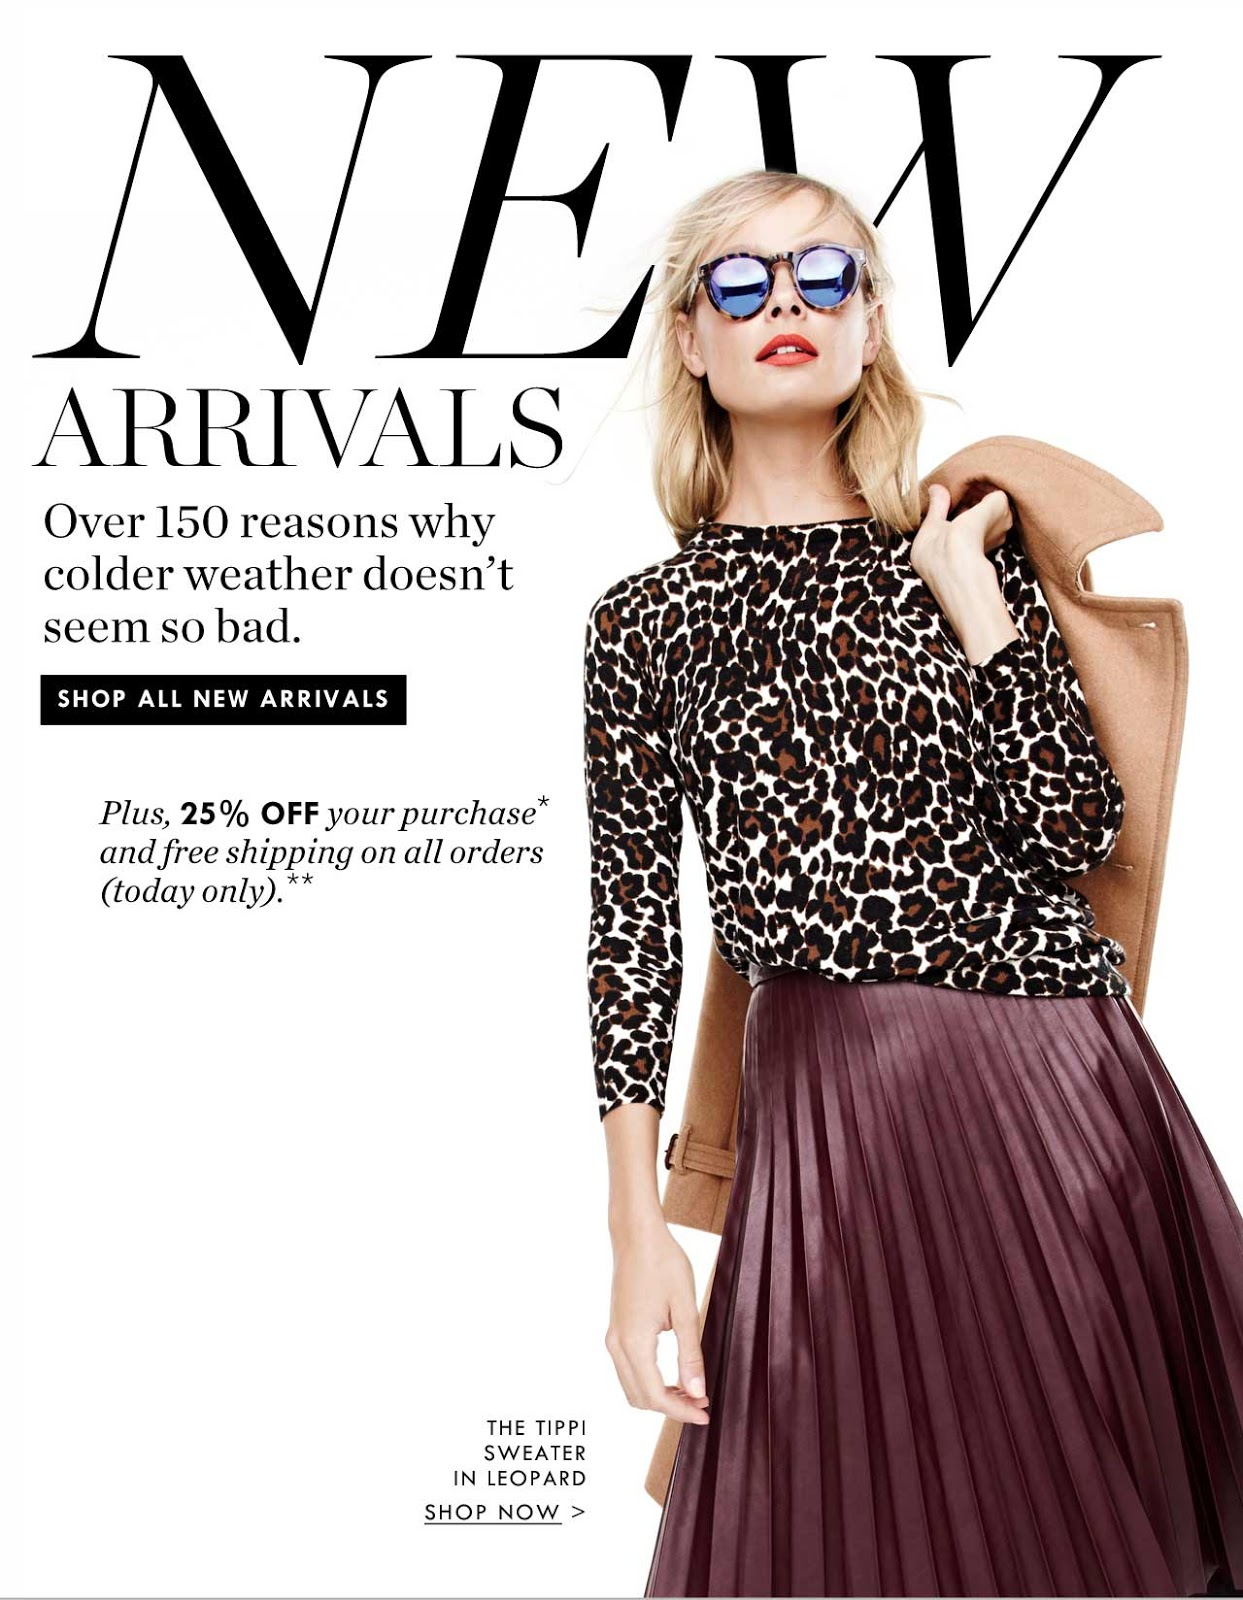 2fbab29a4f9a8 150 New Arrivals Plus Take an Additional 25-40% Off at J.Crew (free  shipping today!)